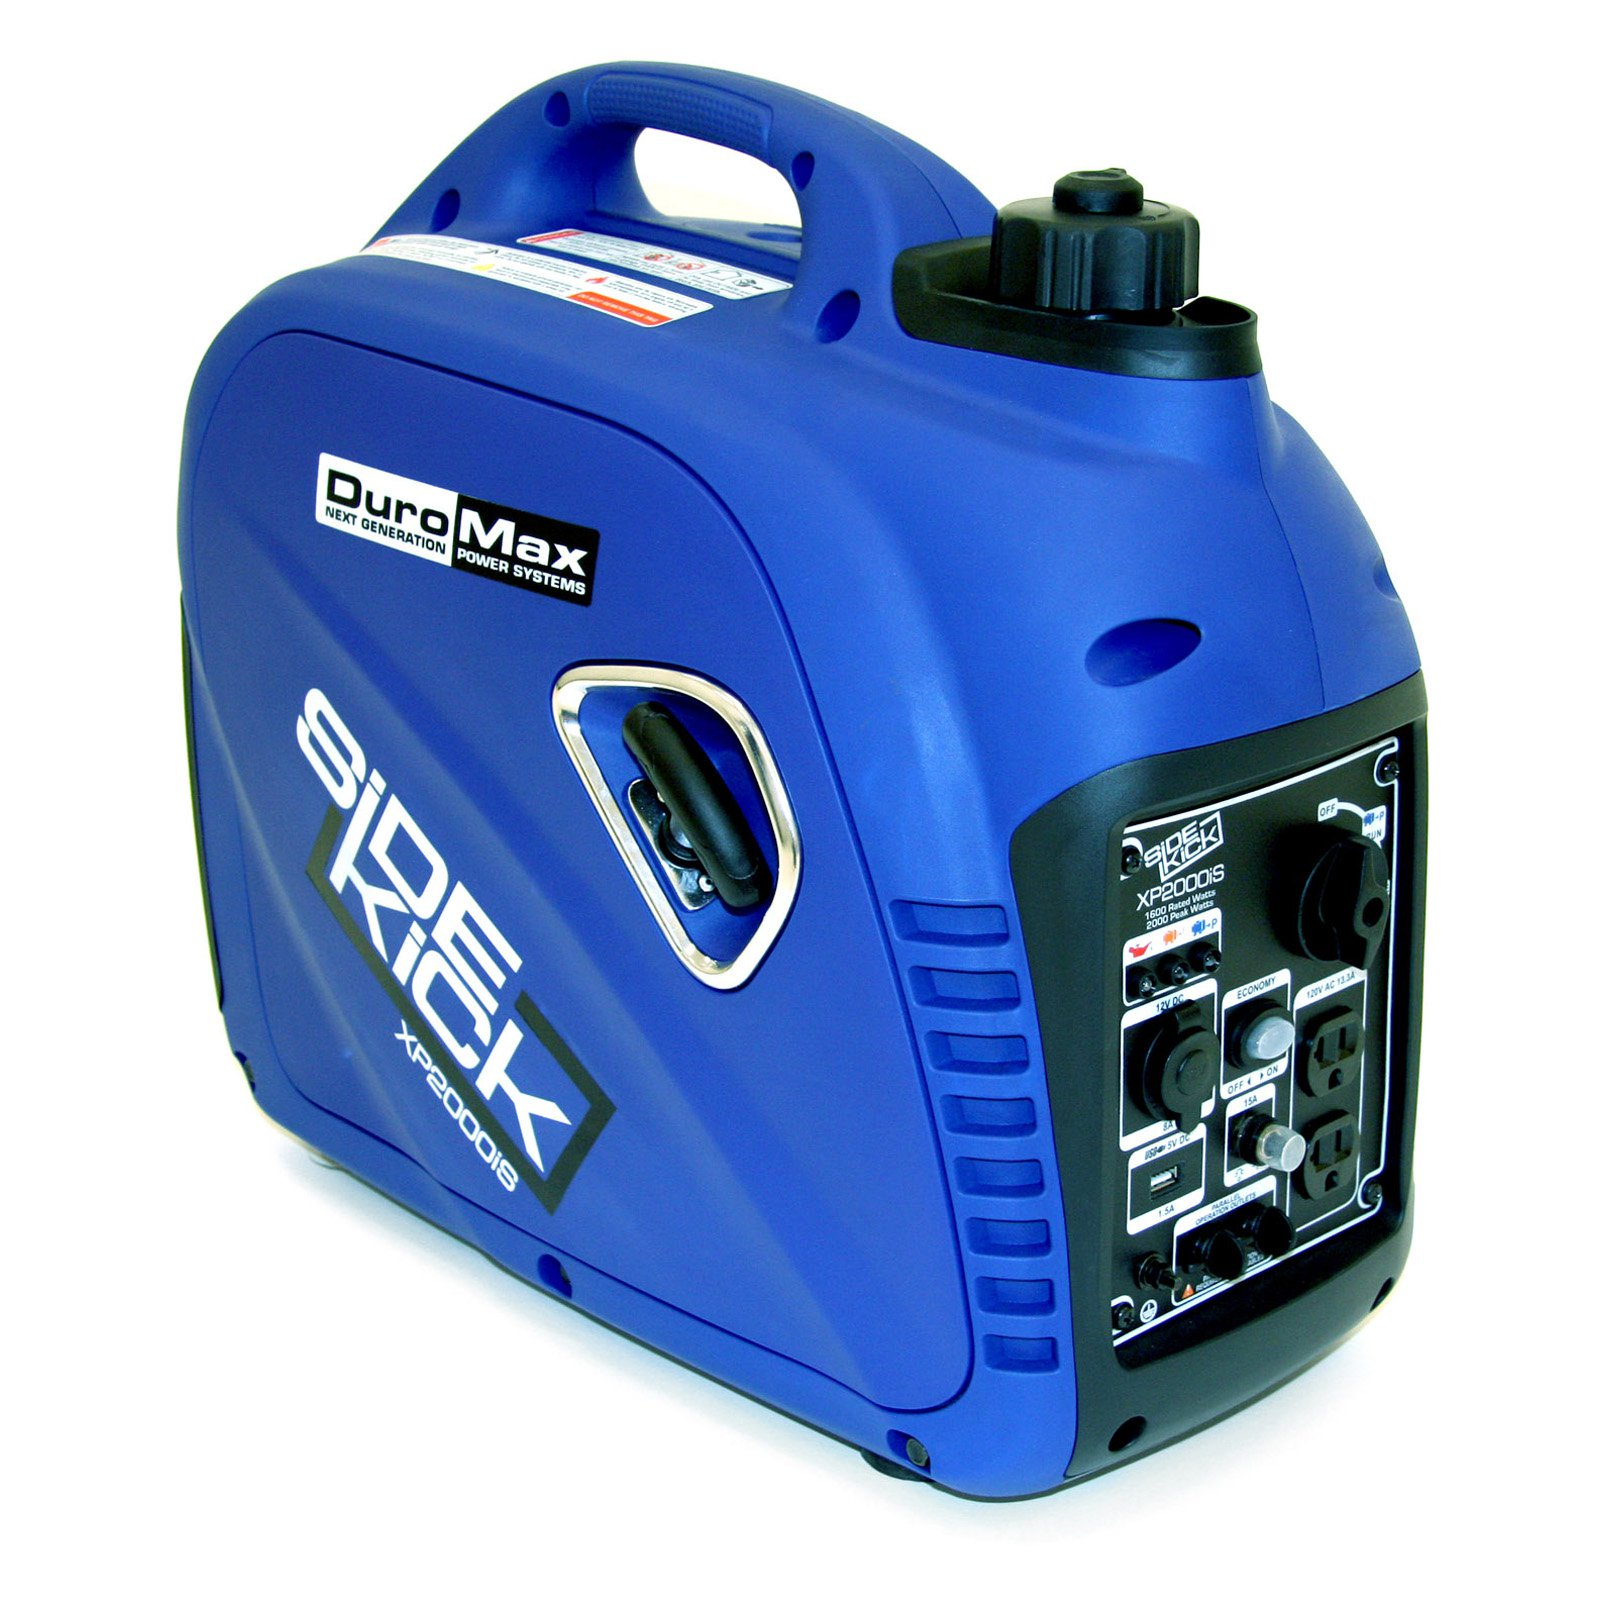 DuroMax 2000 Watt Gas Powered Digital Inverter Portable Generator